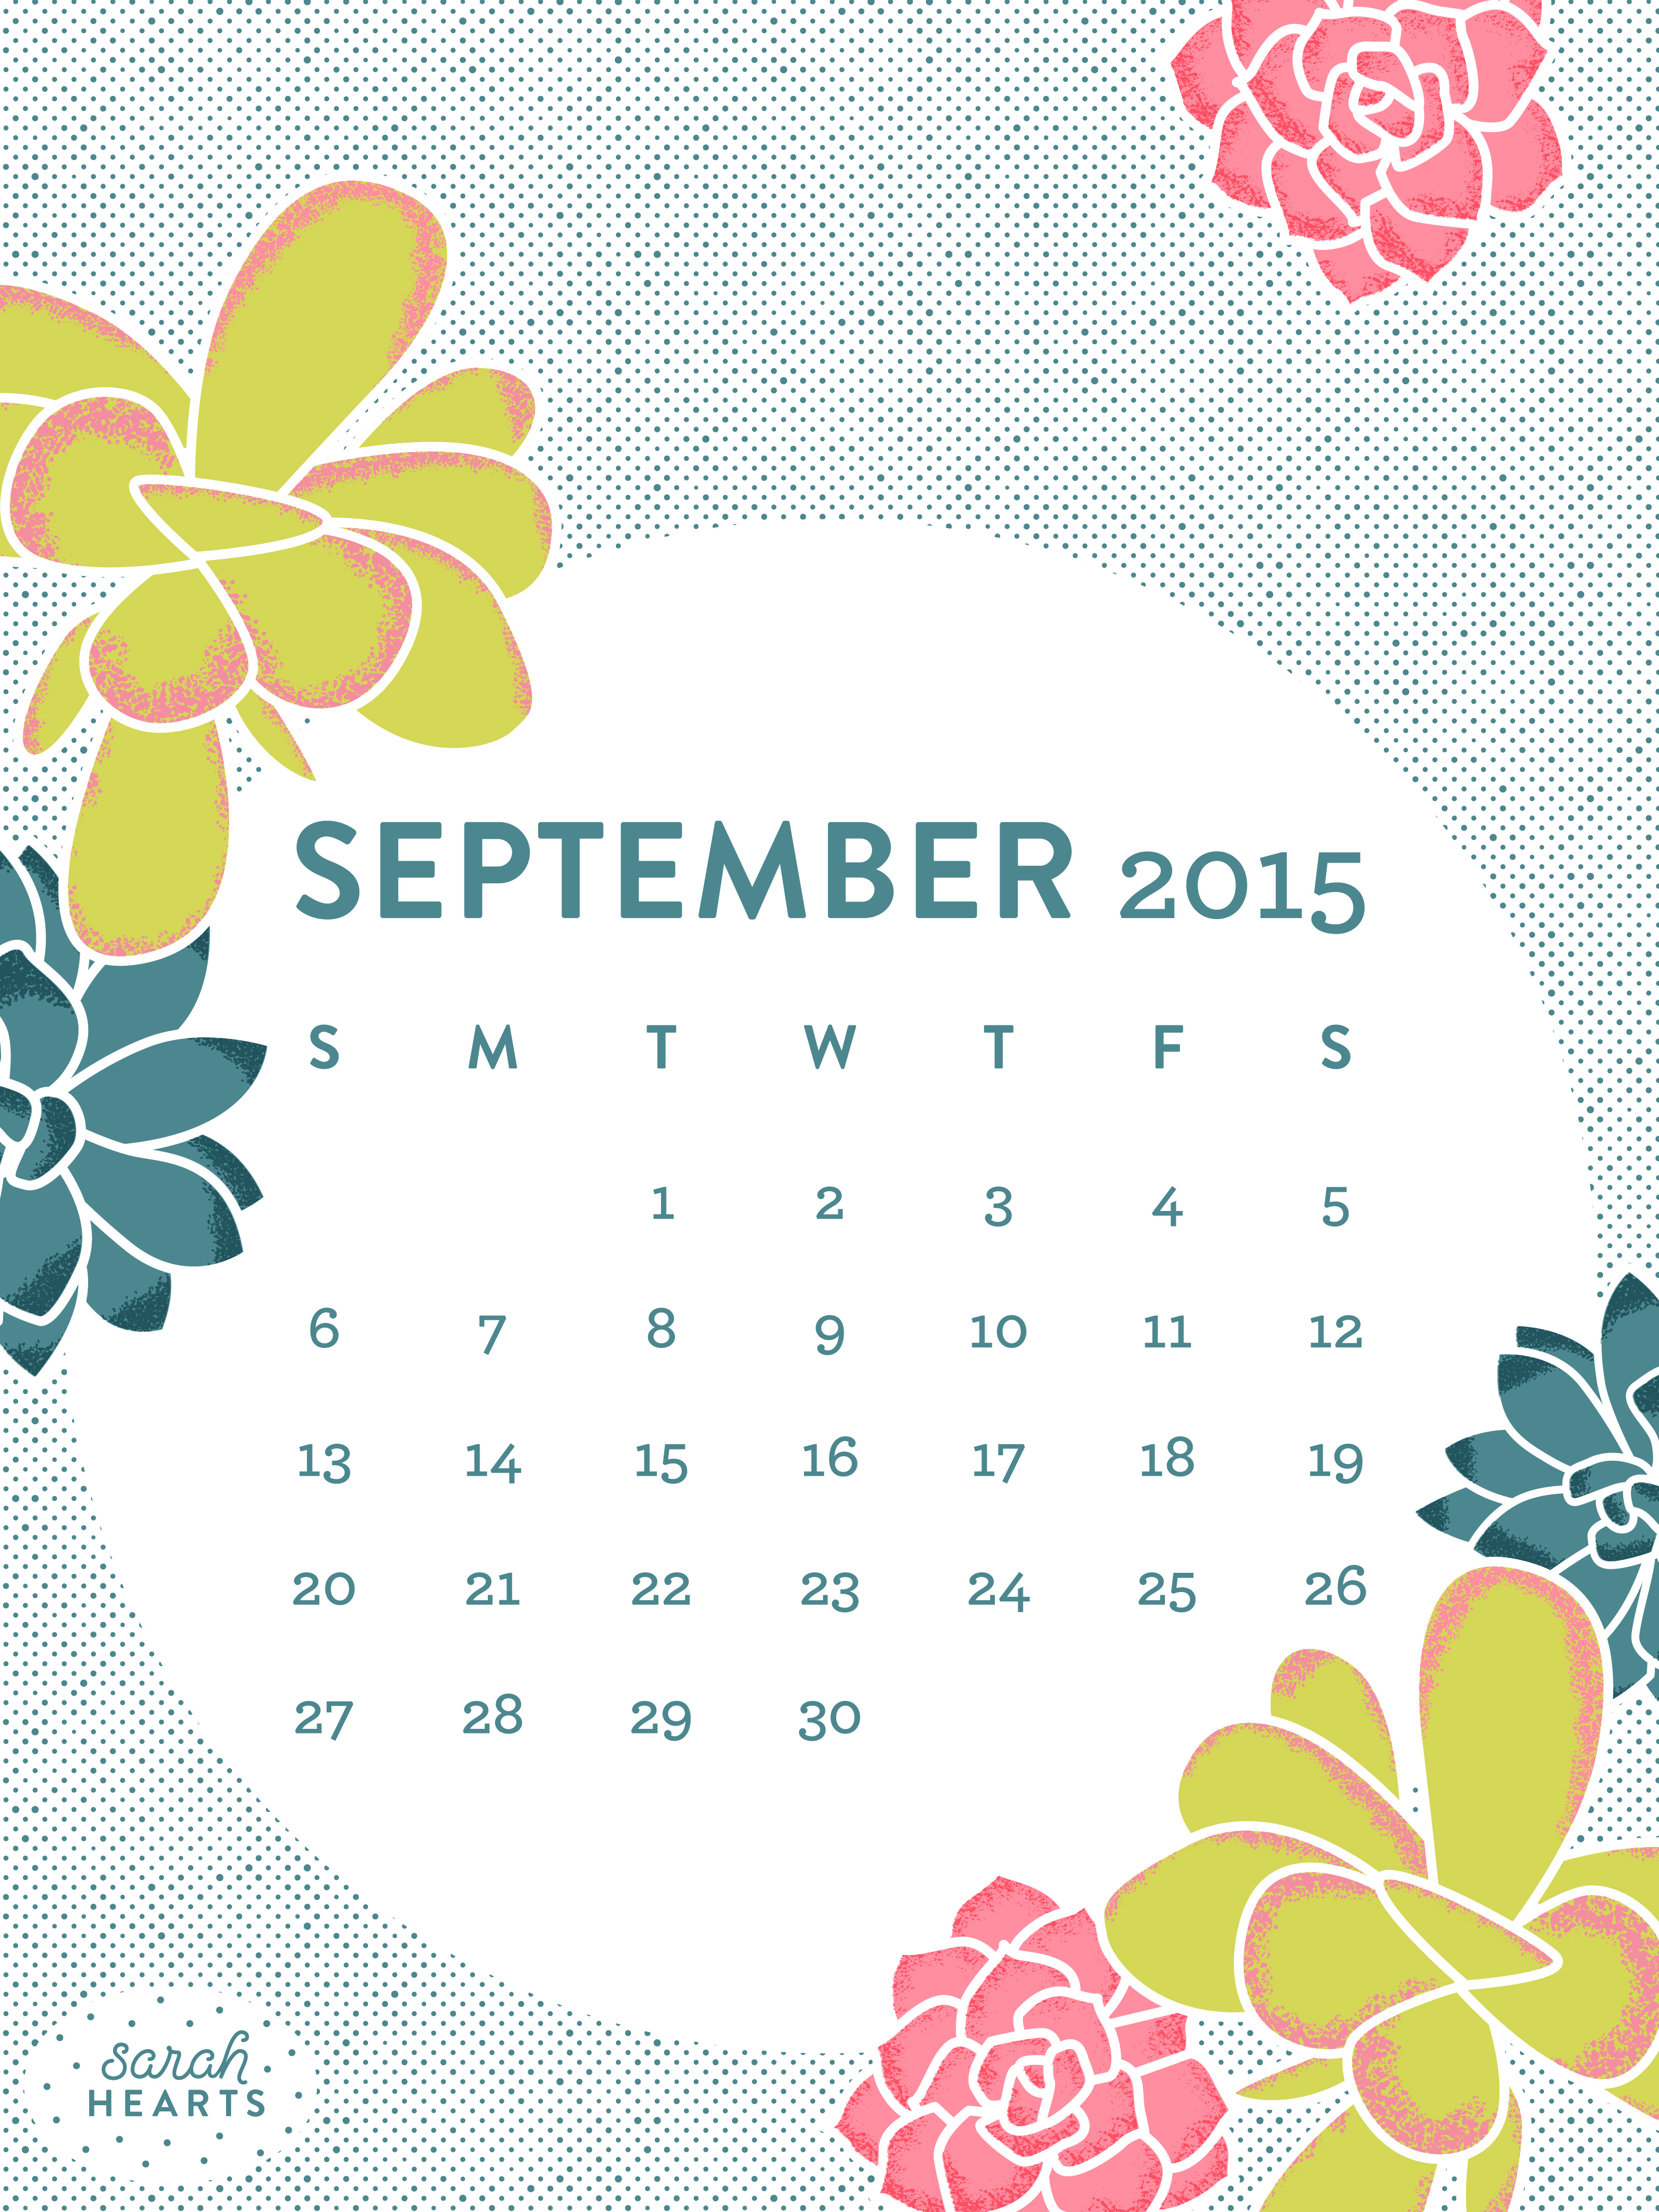 September 2015 Calendar Wallpaper   Sarah Hearts 3200x4267